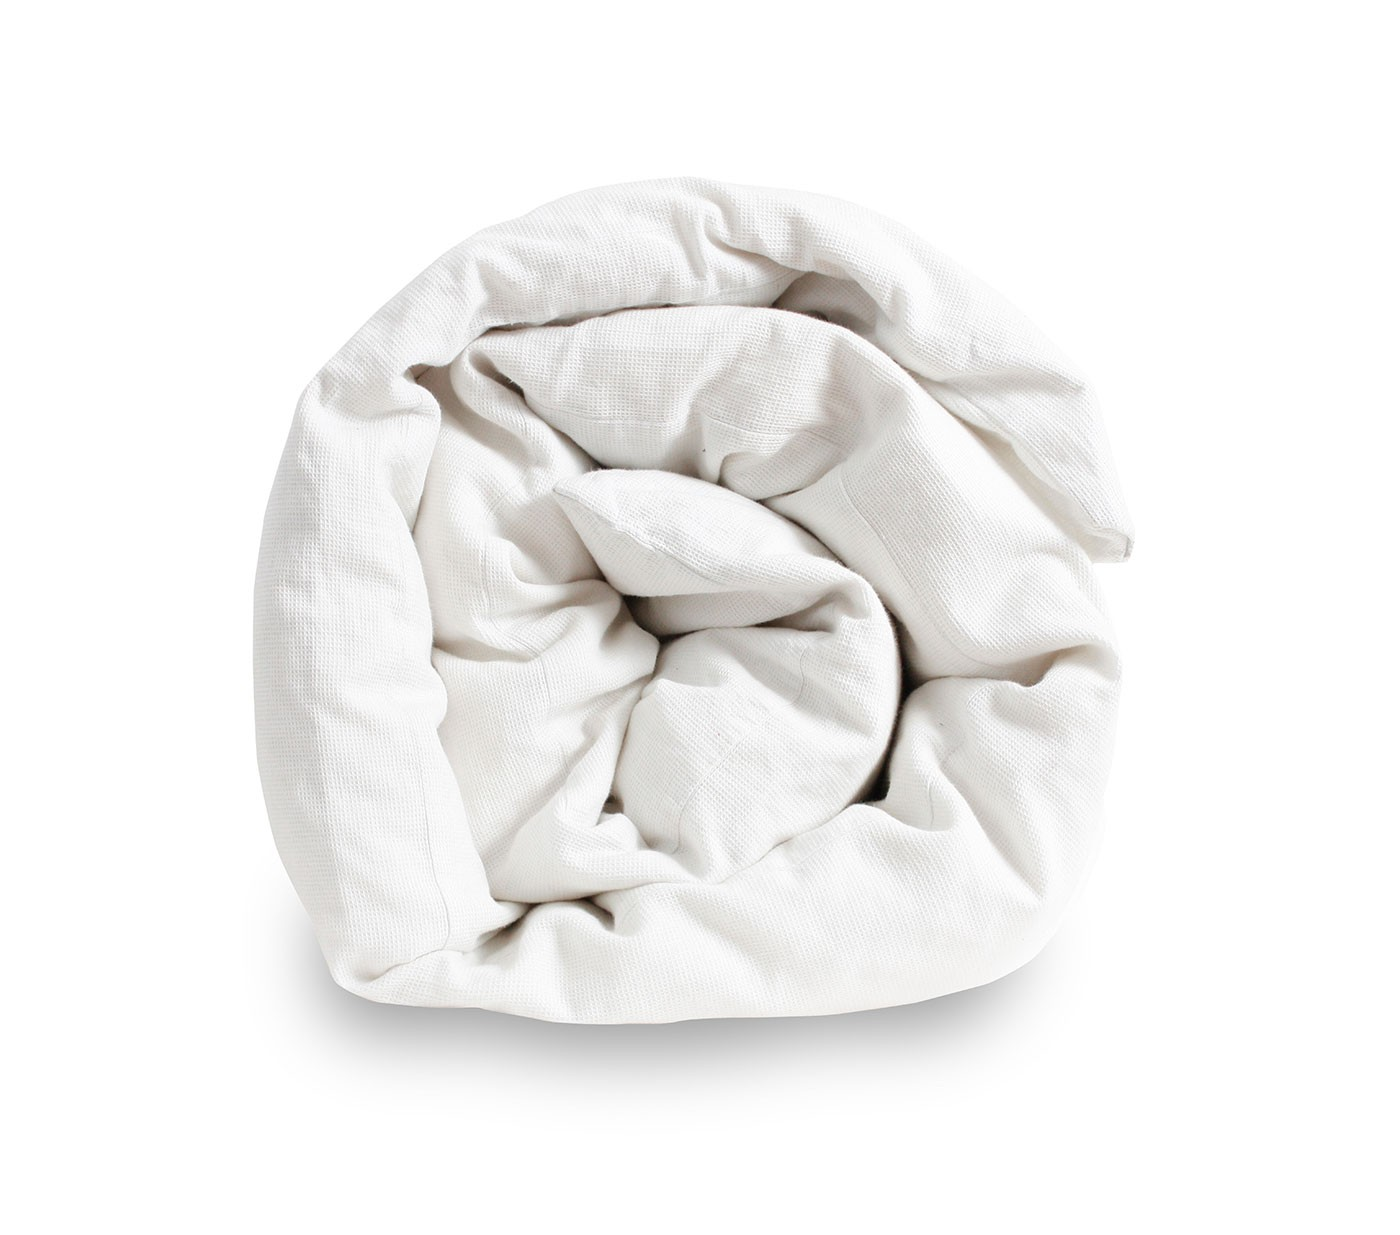 The Home Furnishings Company Duvets for all seasons